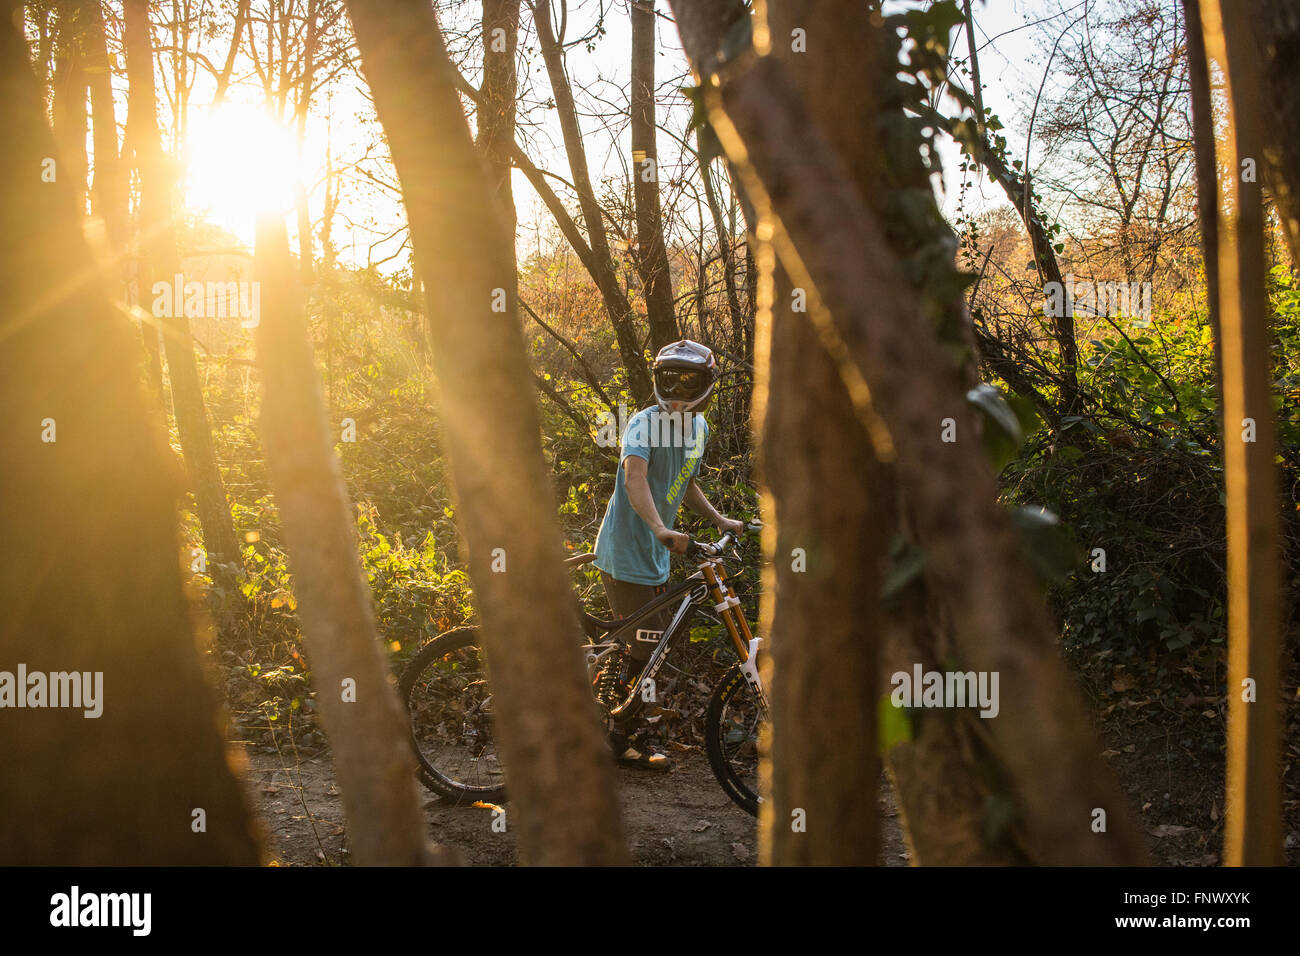 Boy riding Mountain Bike in Italy during an autumnal day. 2015. - Stock Image